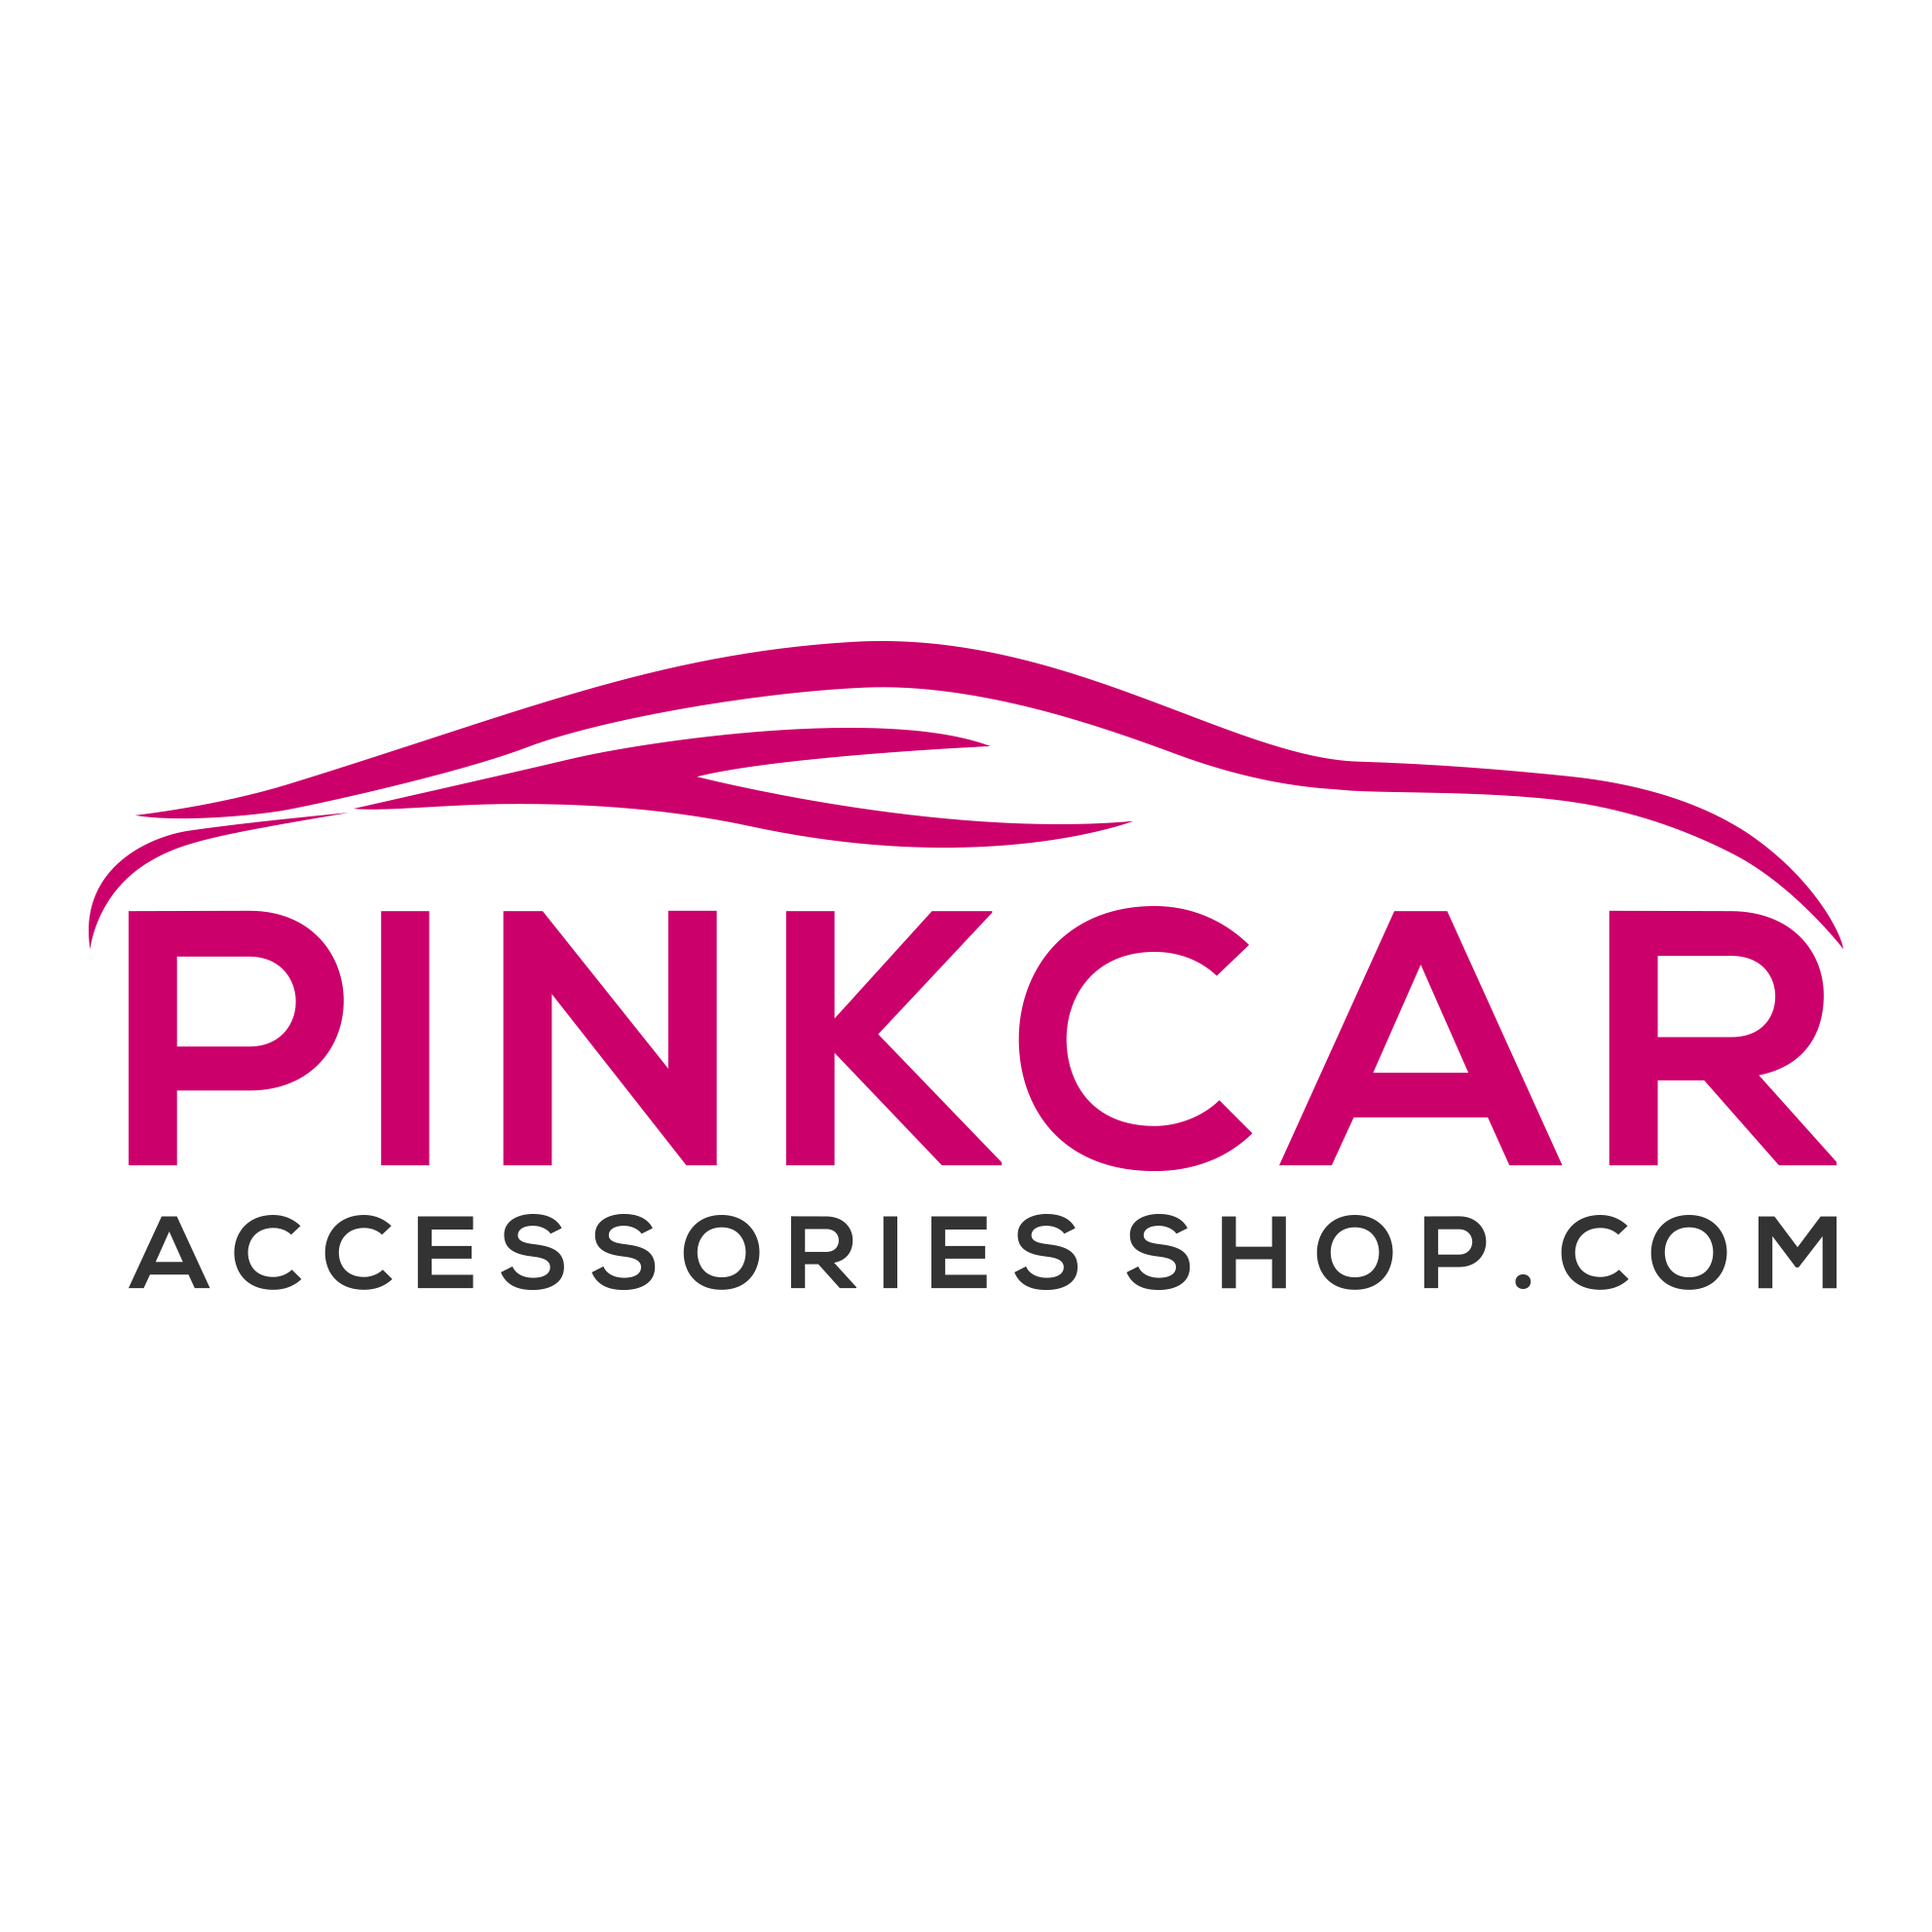 Pink car accessories in the united states